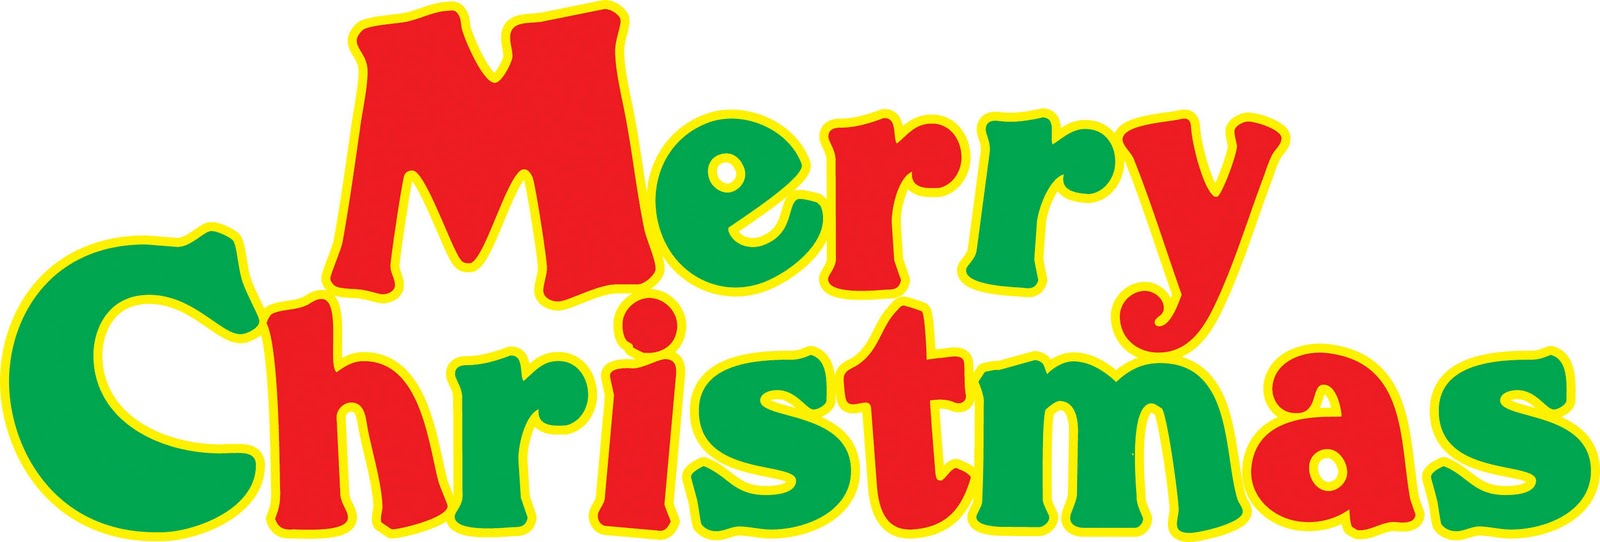 Christmas Clip Art Merry . - Merry Christmas Clipart